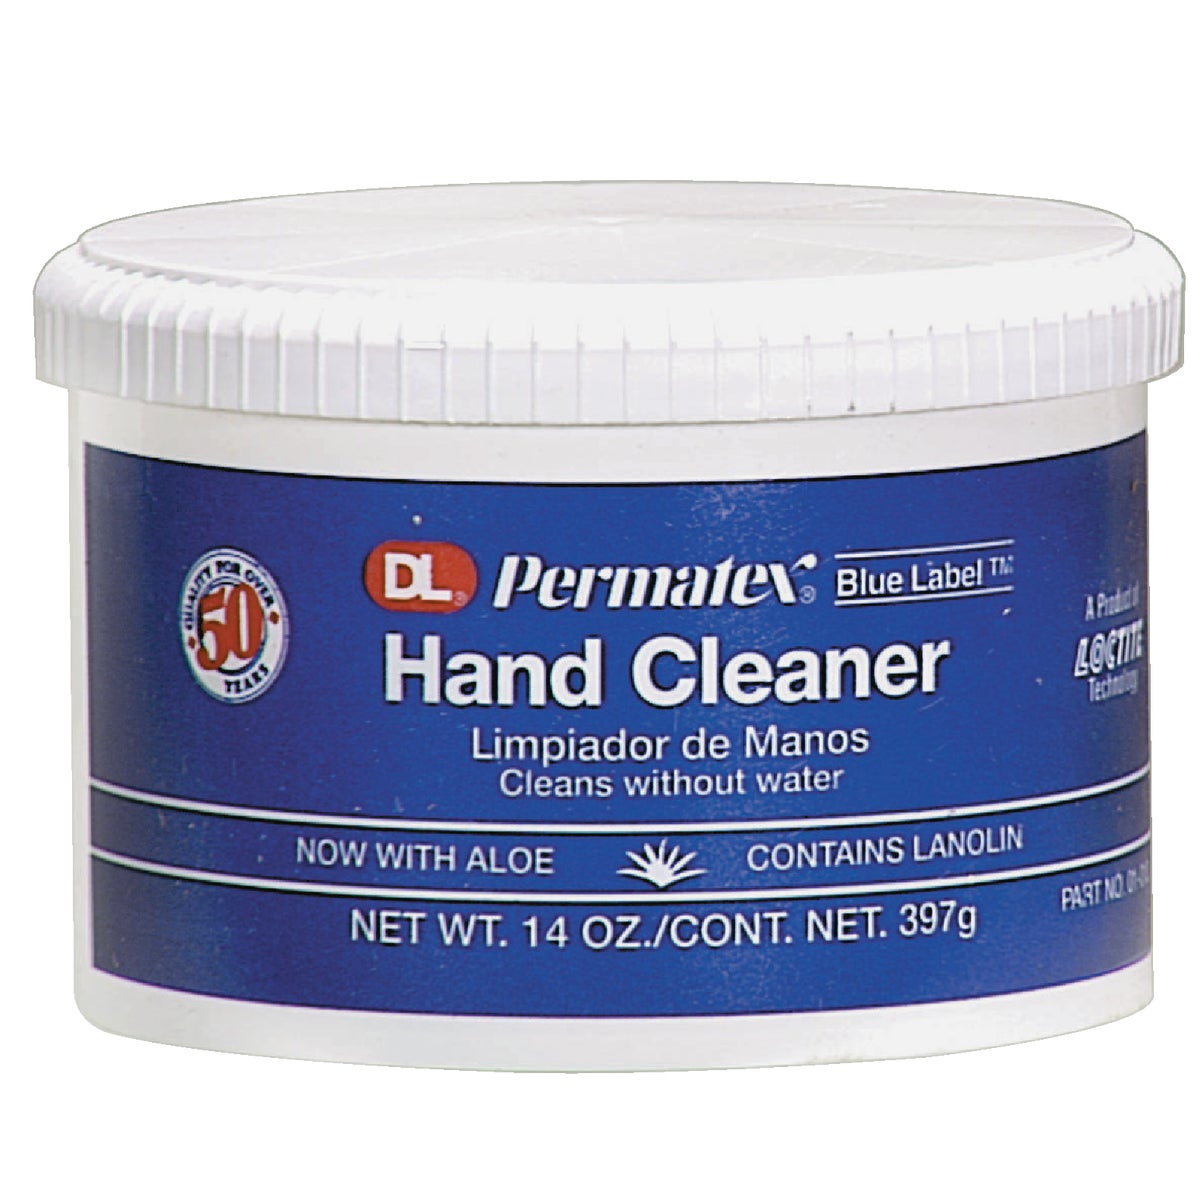 14OZ HAND CLEANER - 01013 by Itw Global Brands